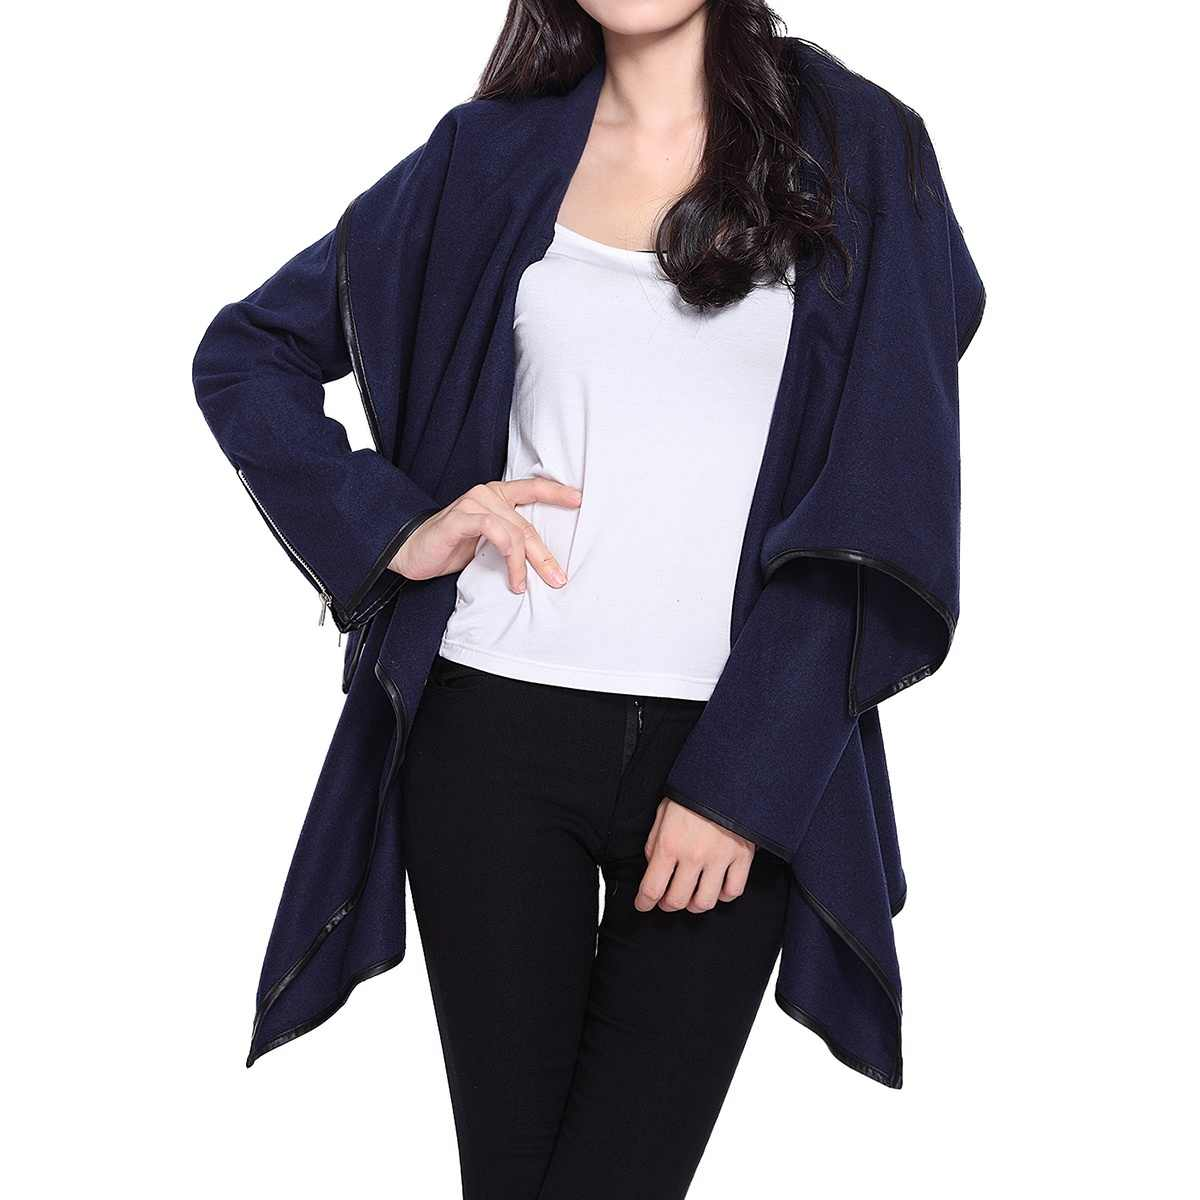 Kenancy Stylish Solid Color Women Causal Trench Coats Autumn Lapel Long Sleeves Female Outwear One Button Asymmetric Femme Coat